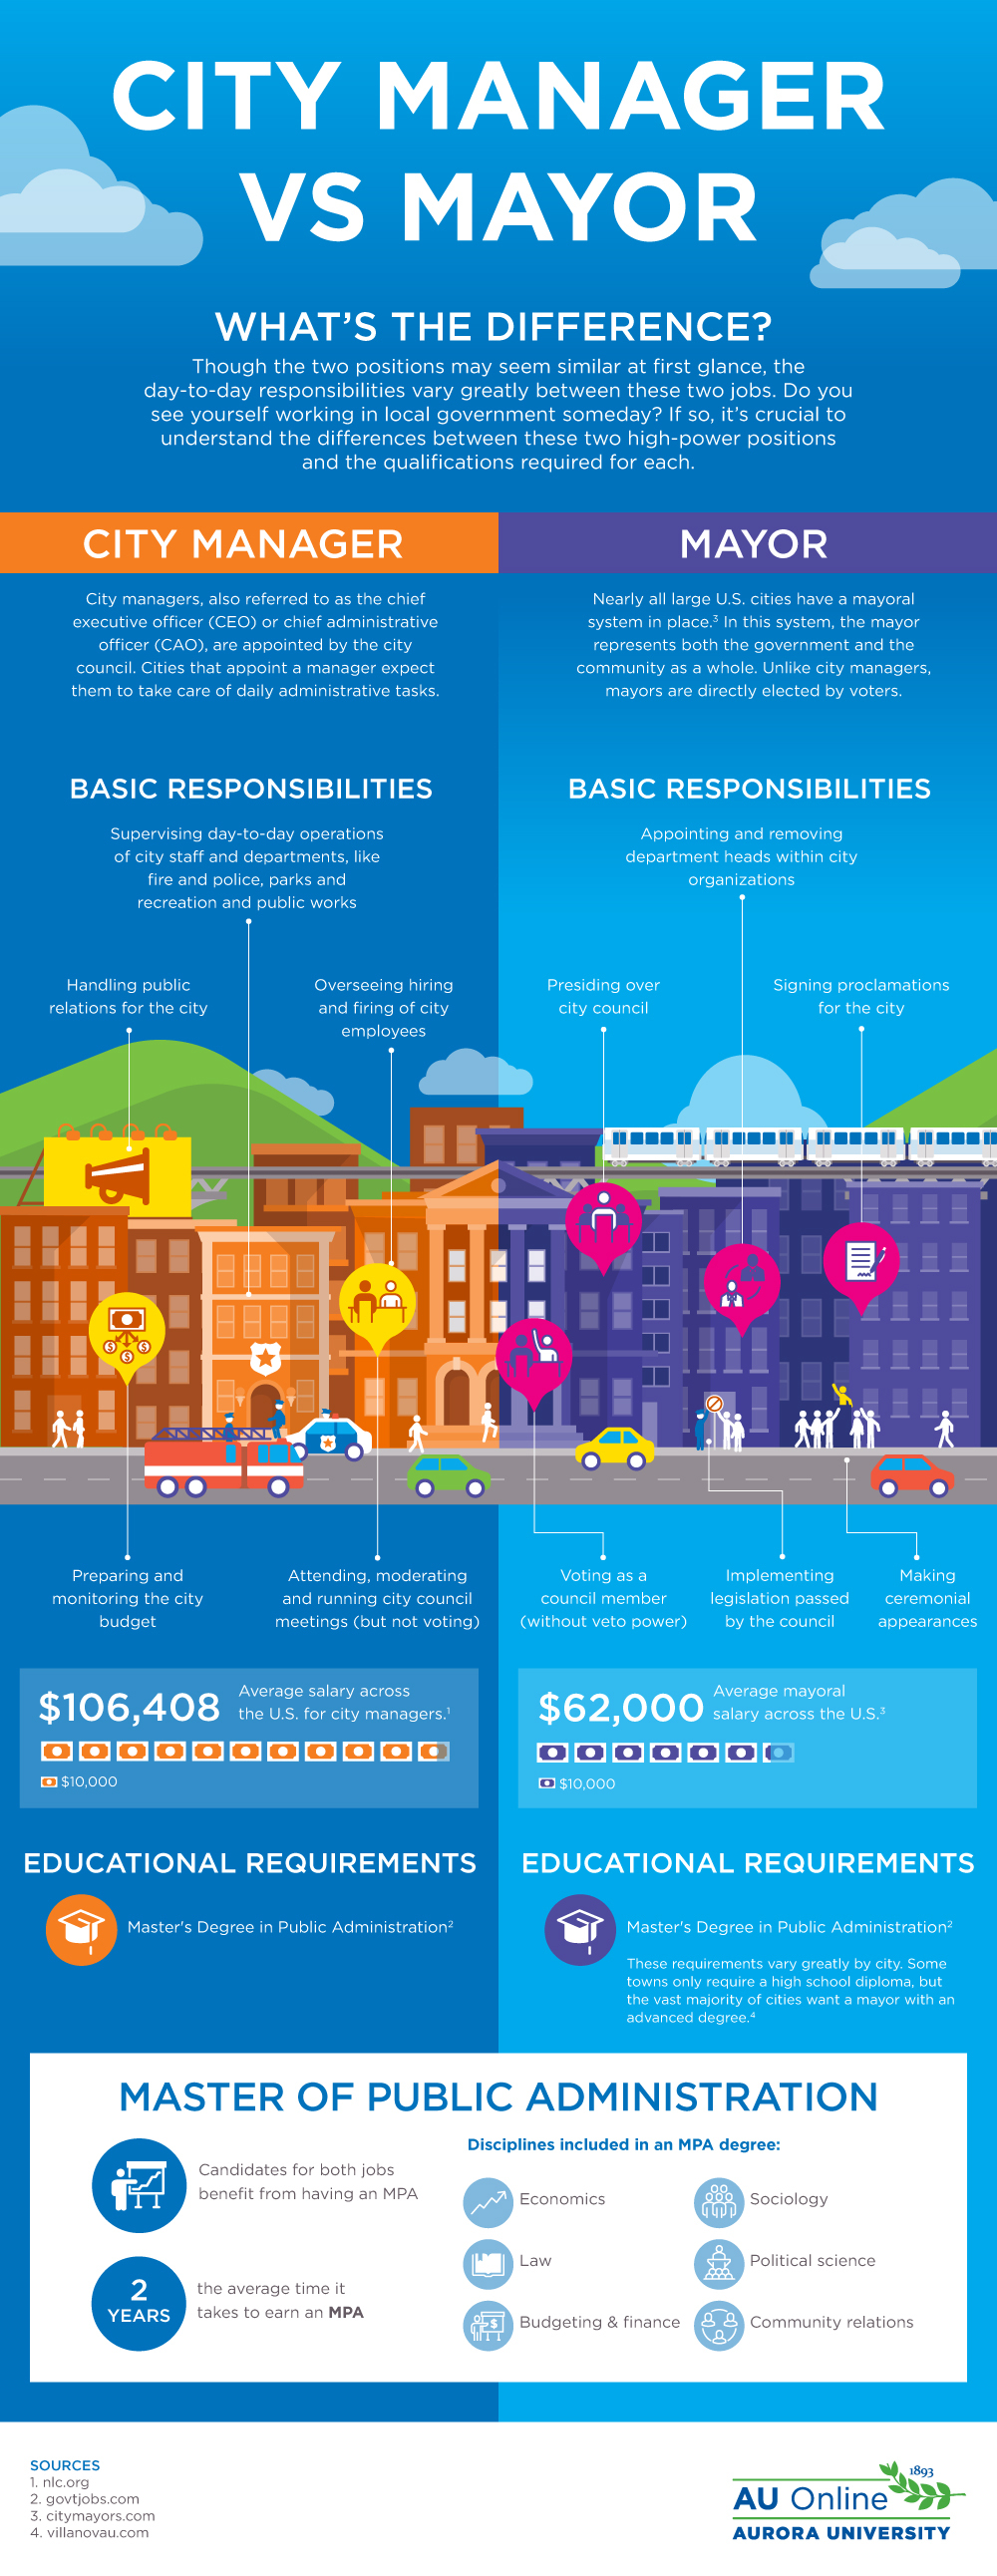 City Manager vs Mayor - AU Online Infographic